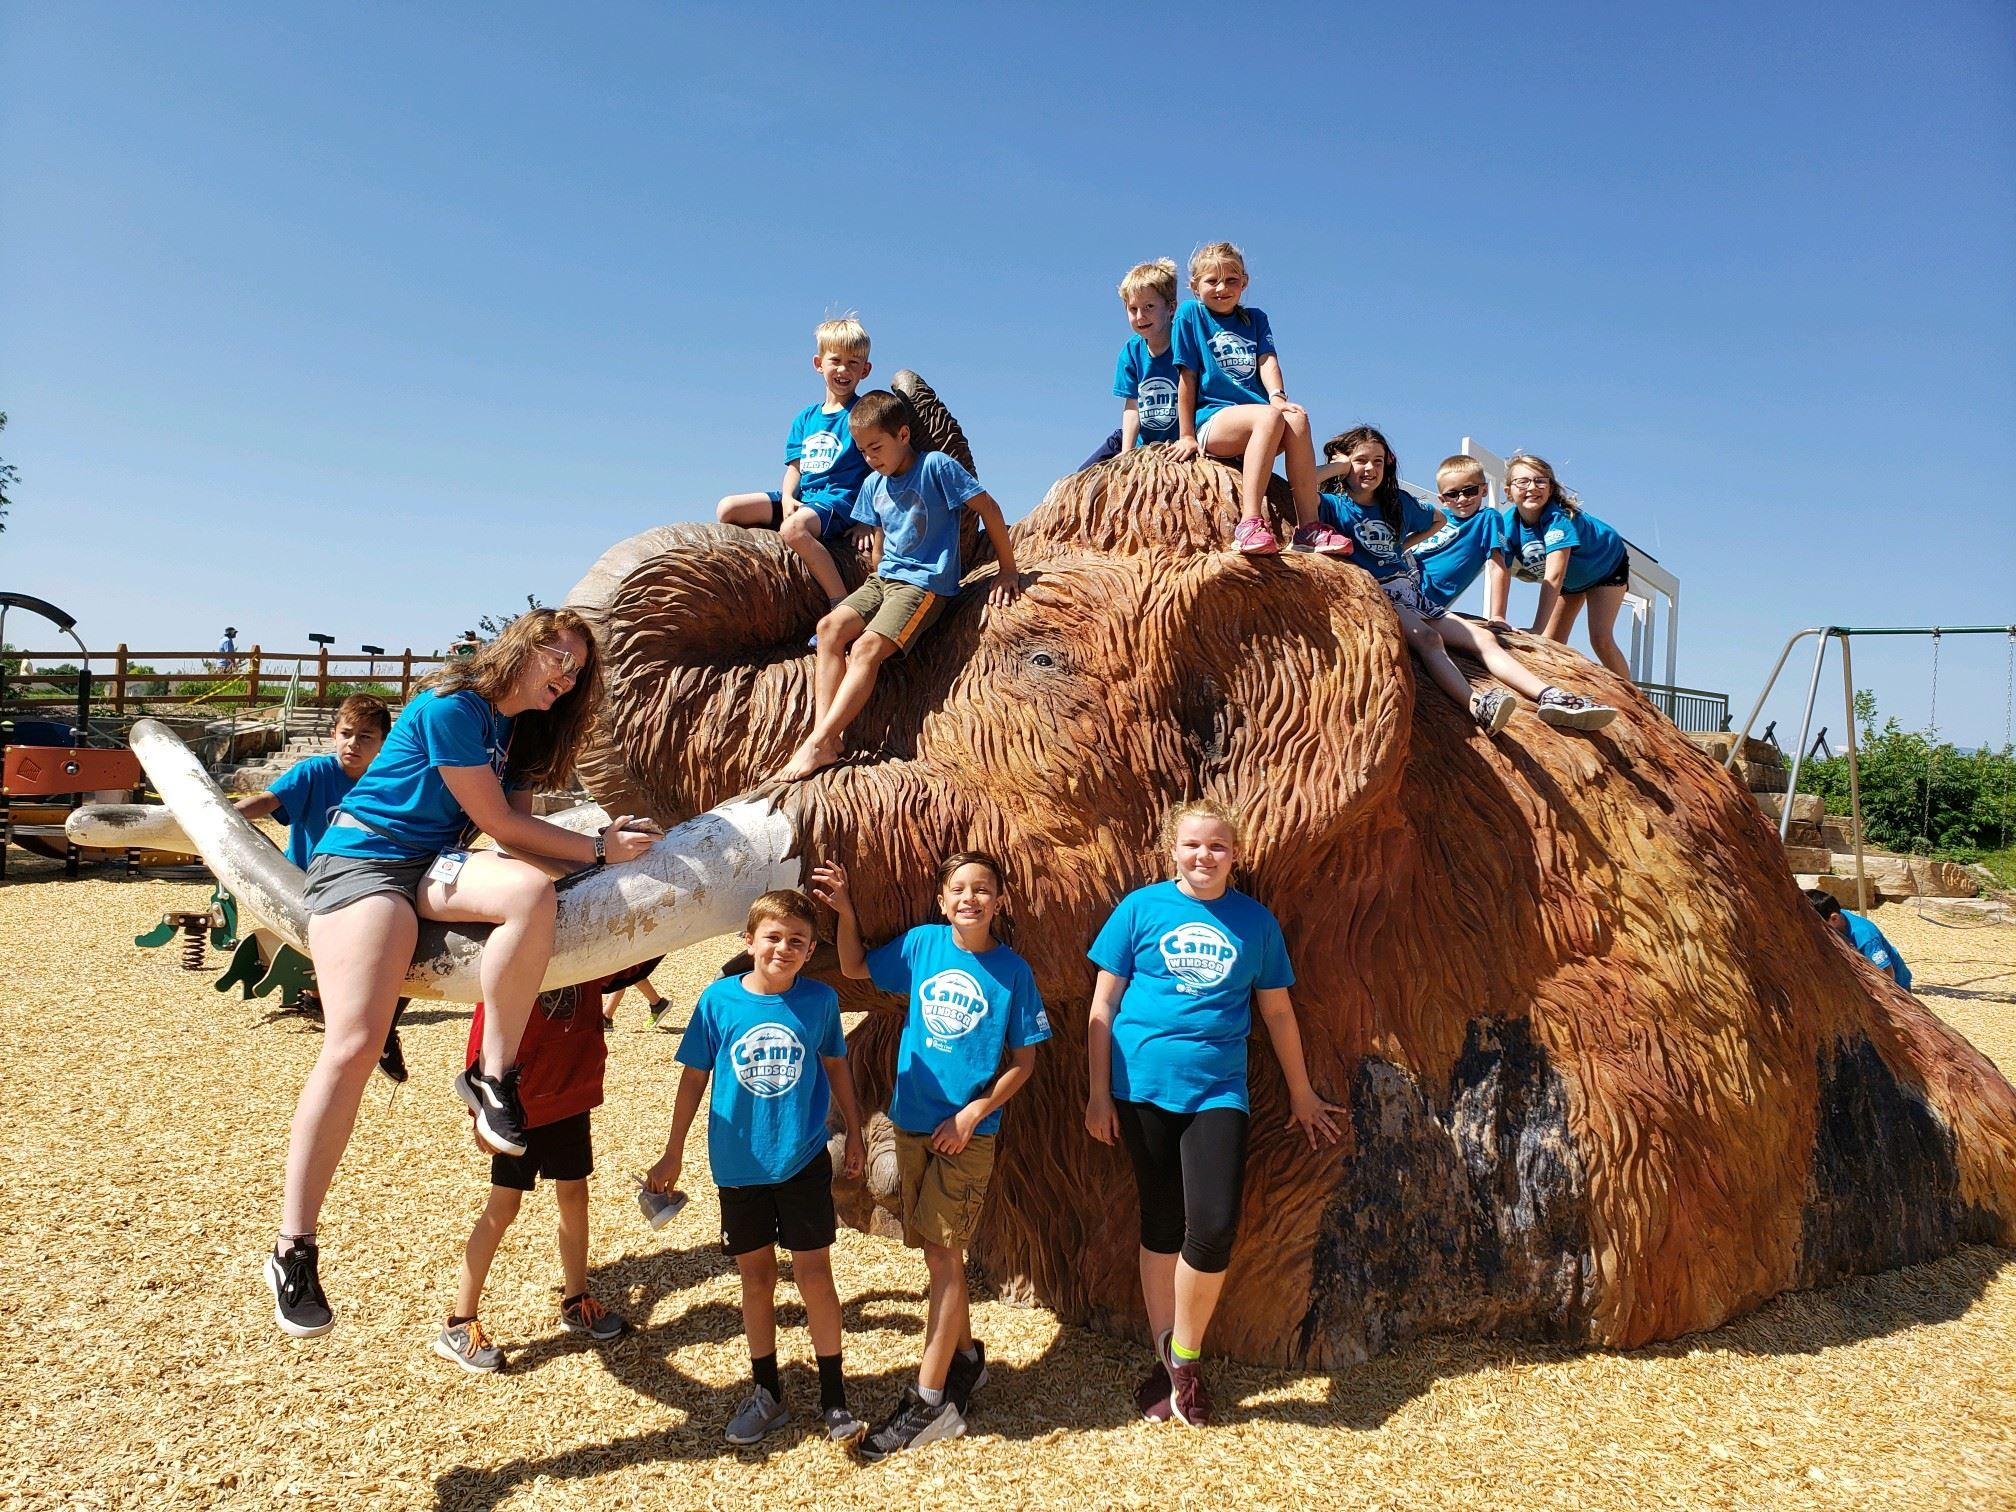 A group of children clclimbing on a large sculpture of a mastadon